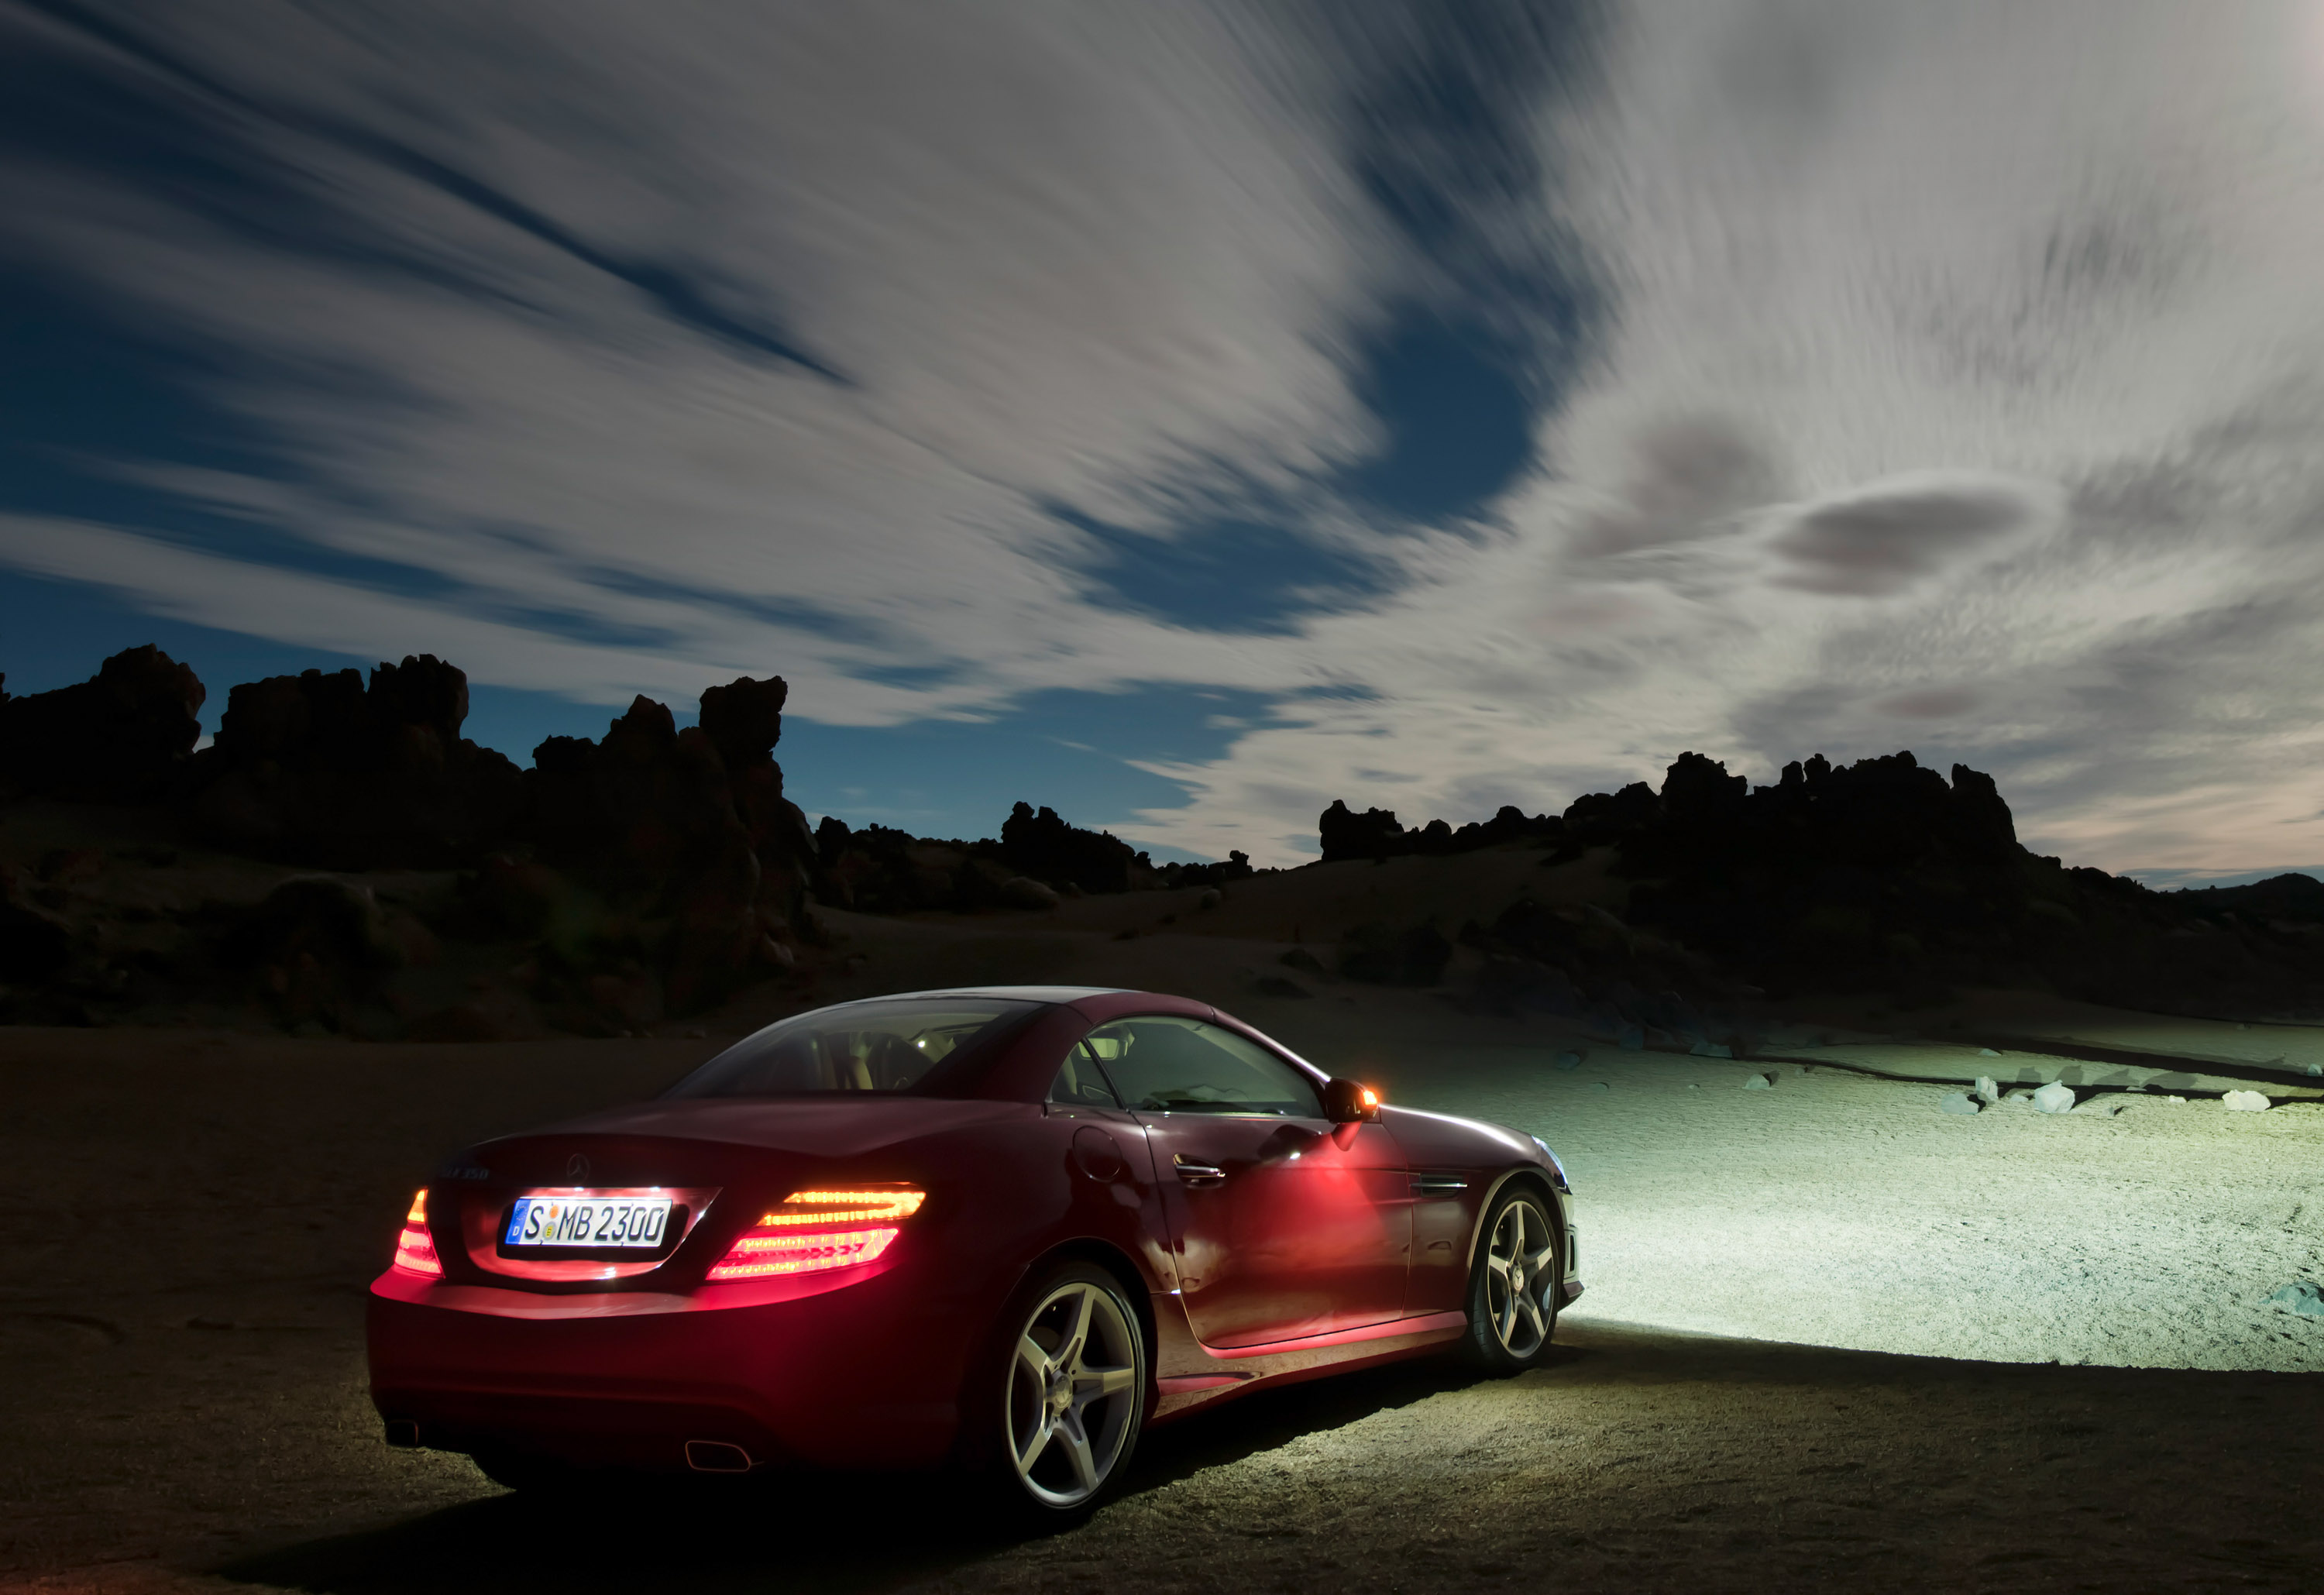 2012 Mercedes-Benz SLK Roadster - Picture 47348